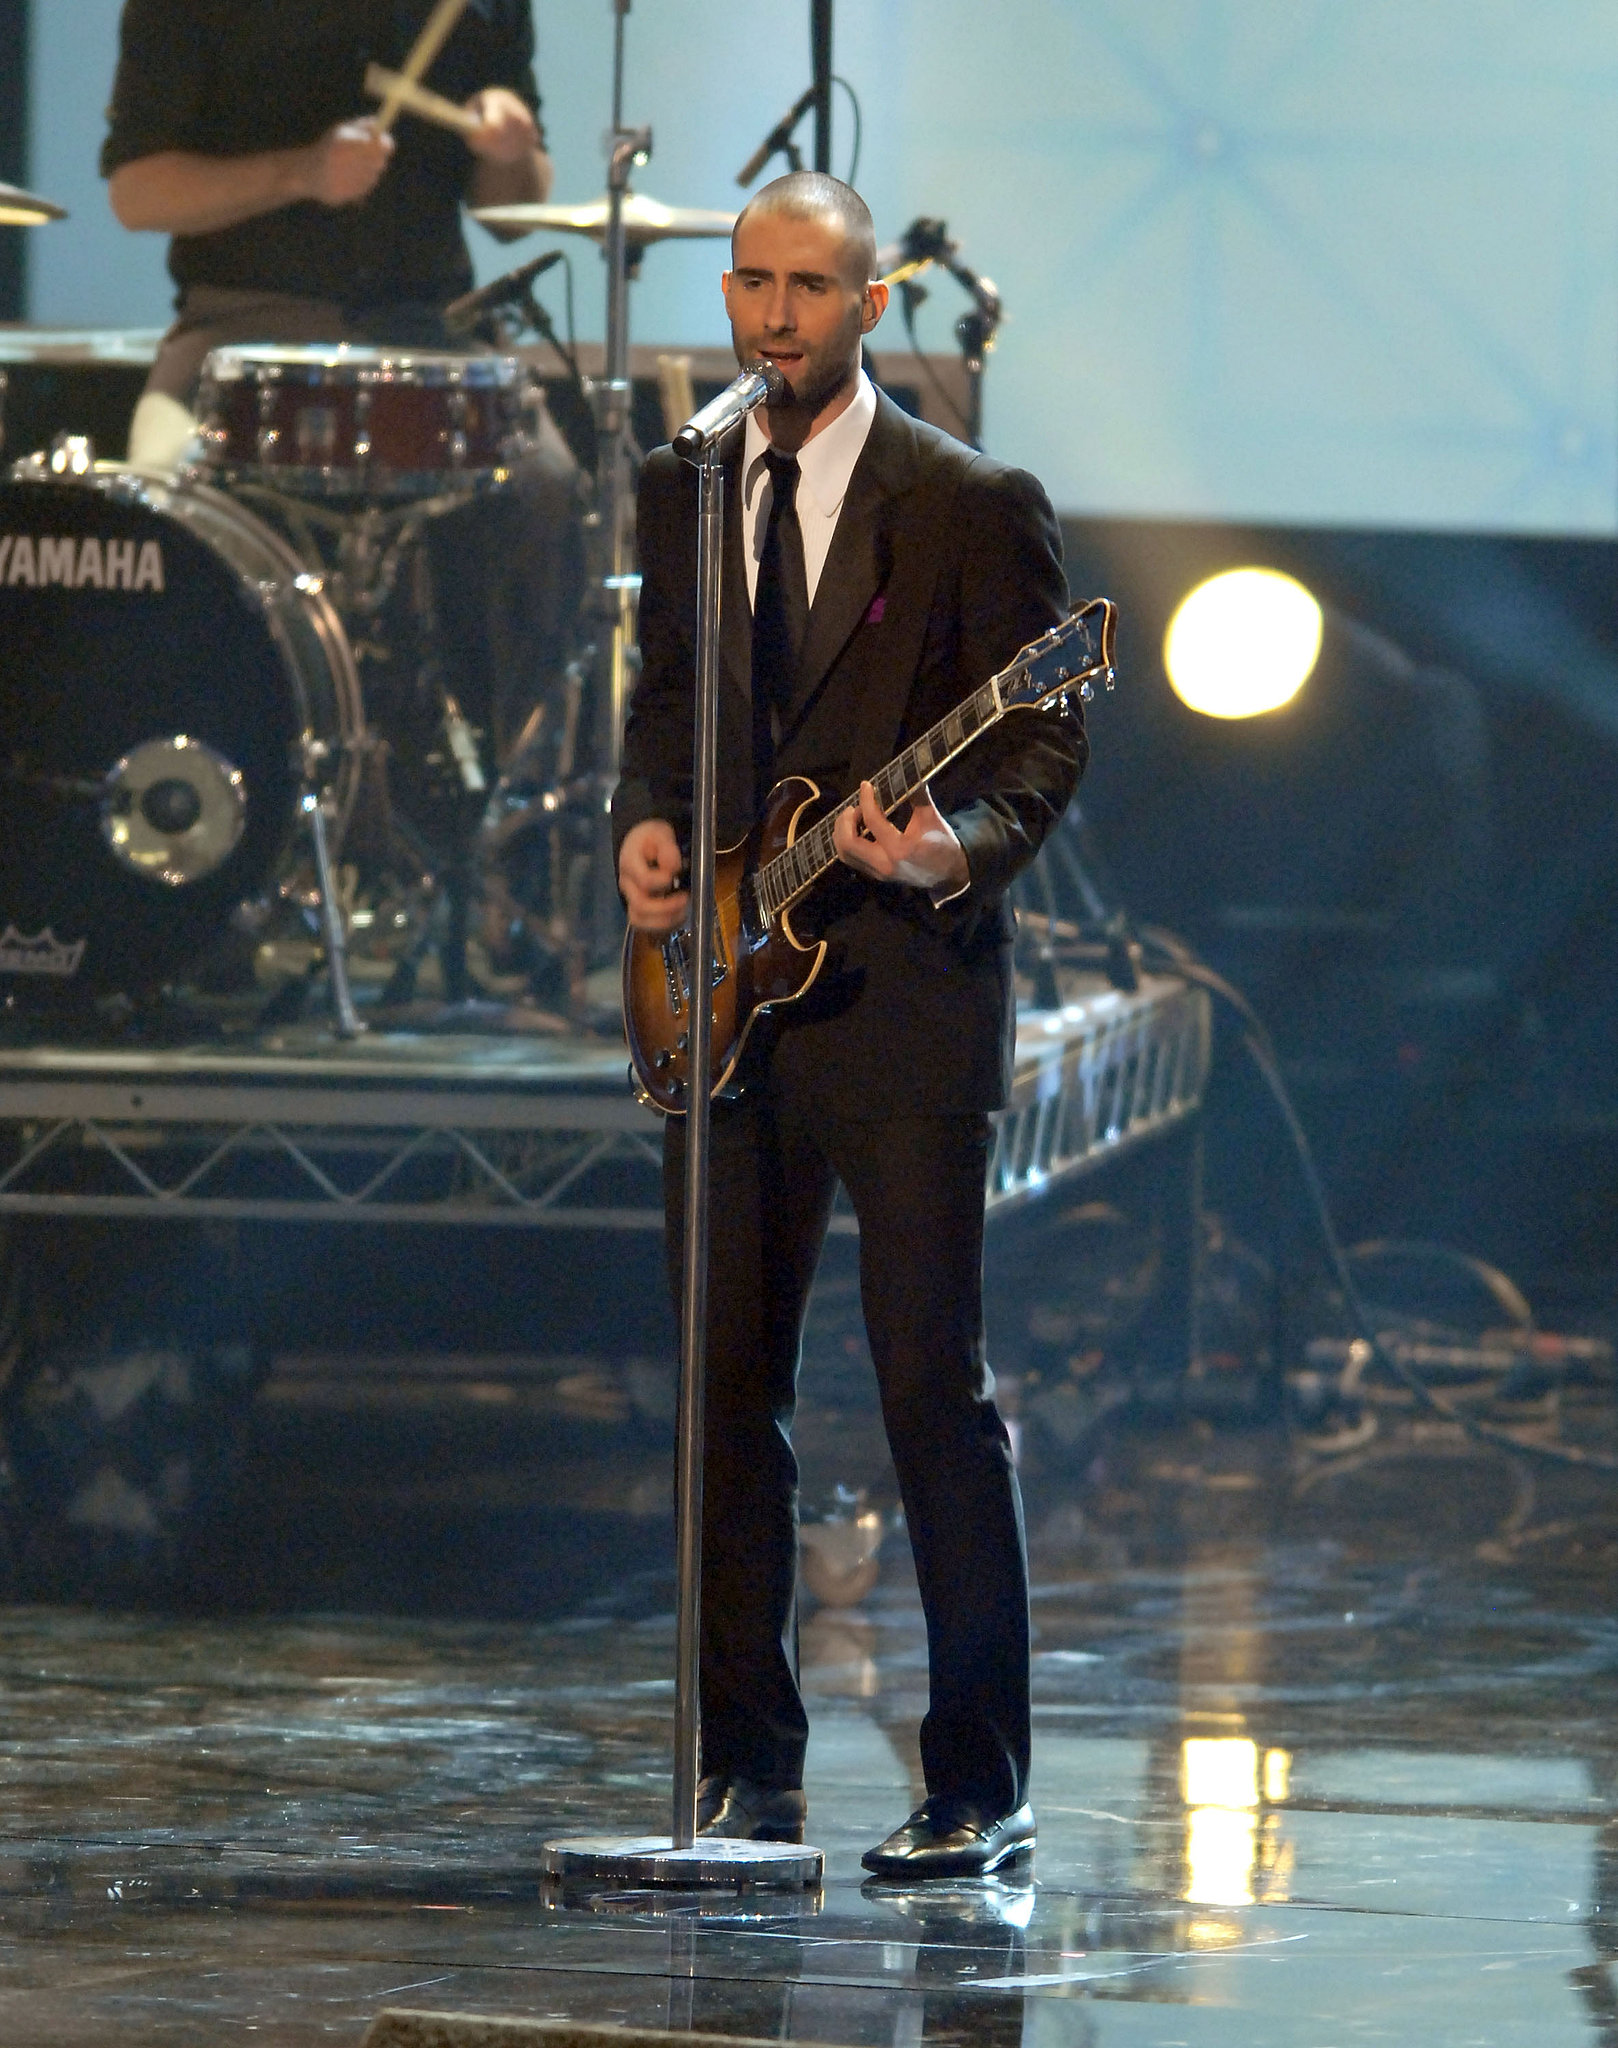 Adam Levine and Maroon 5 hit the stage in 2007.